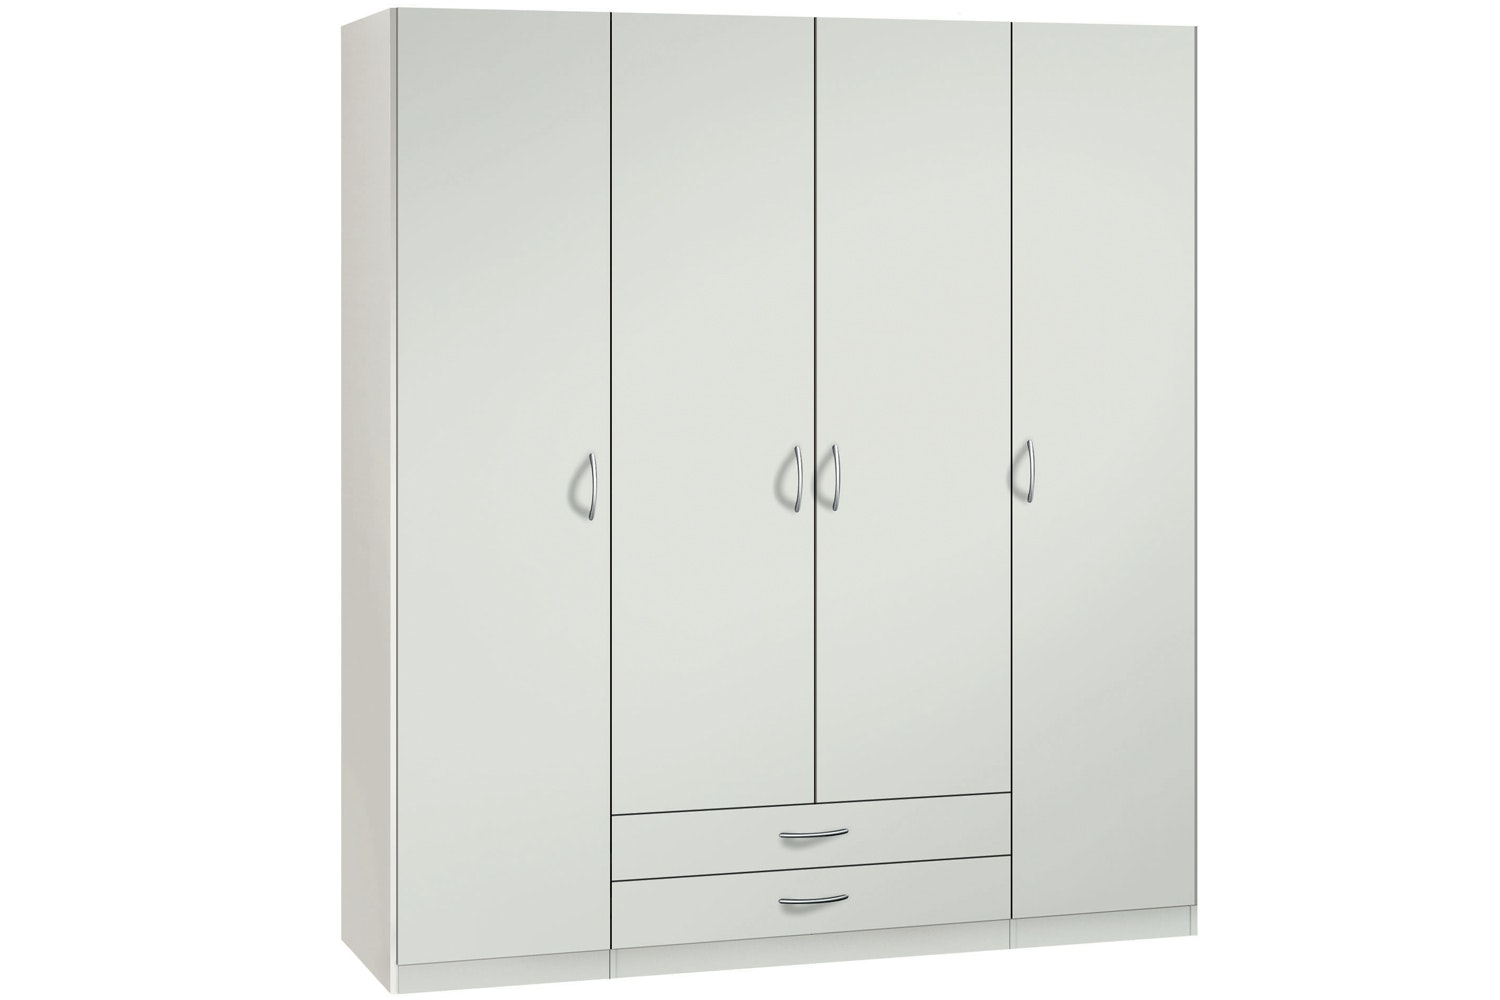 Jutzler Sonja Hinged 4 Door 2 Drawer Wardrobe | White